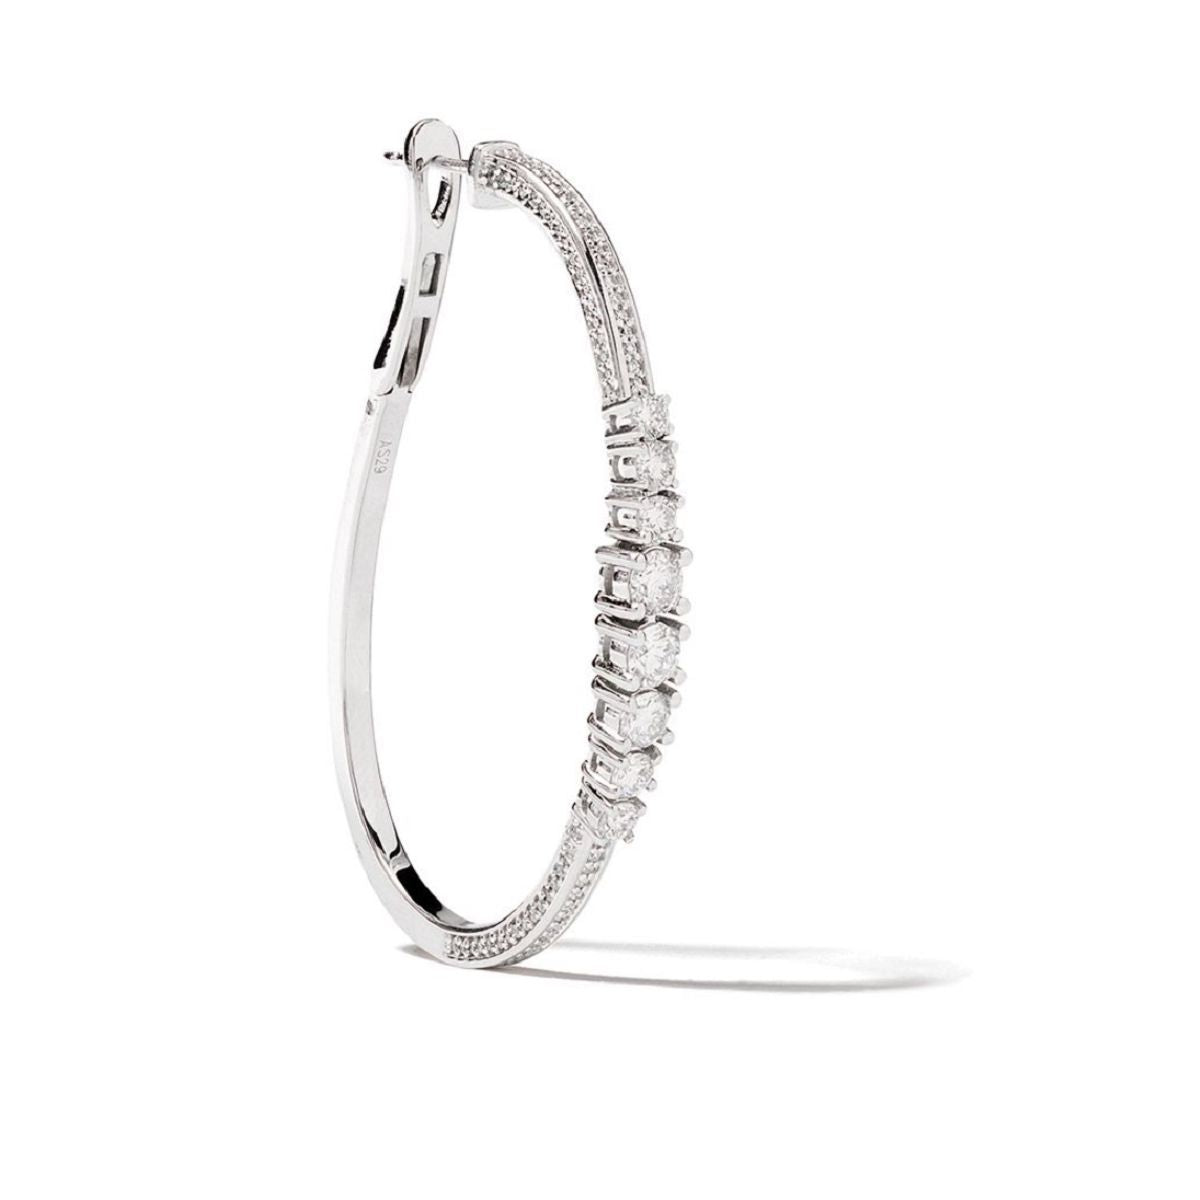 Icicle Pave Diamond 45mm Hoop Earrings